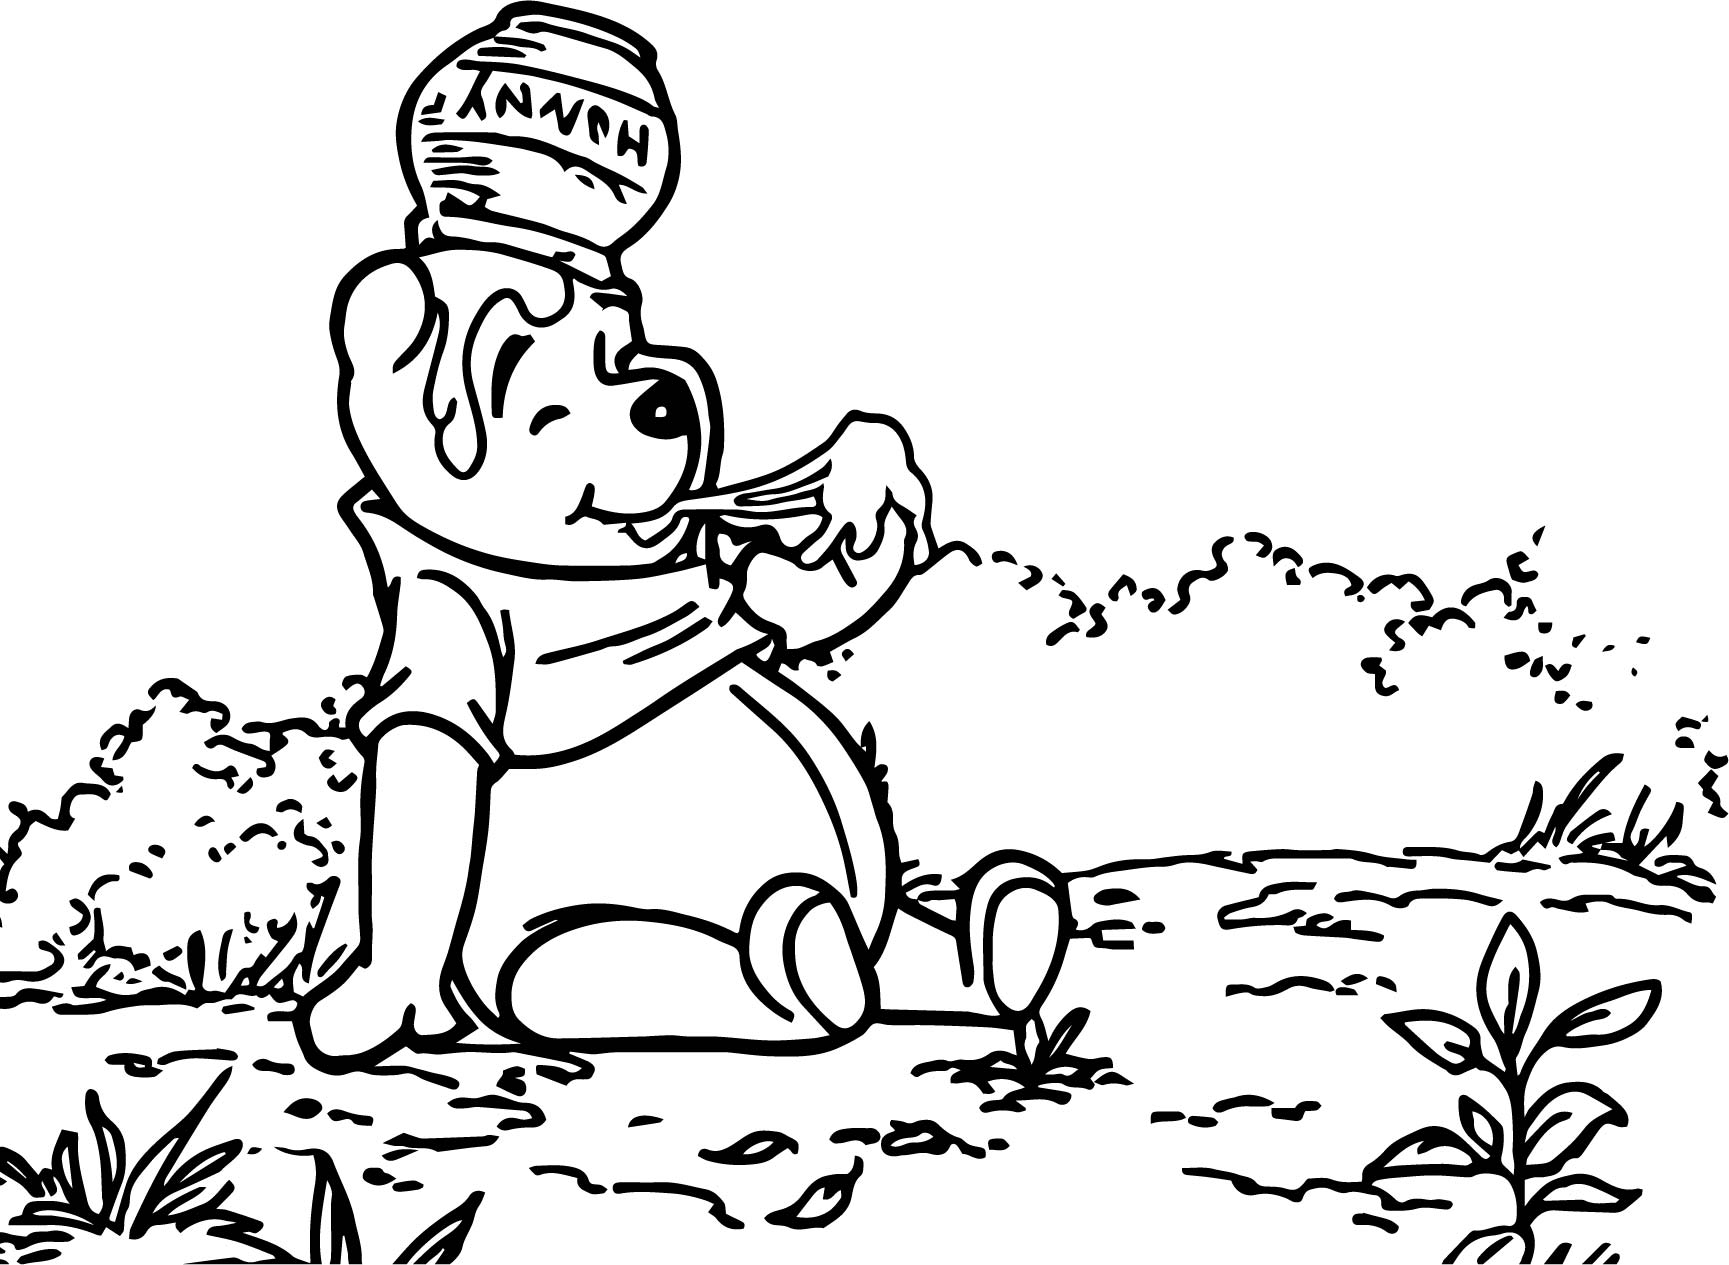 winnie the pooh hmm hunny coloring page wecoloringpage